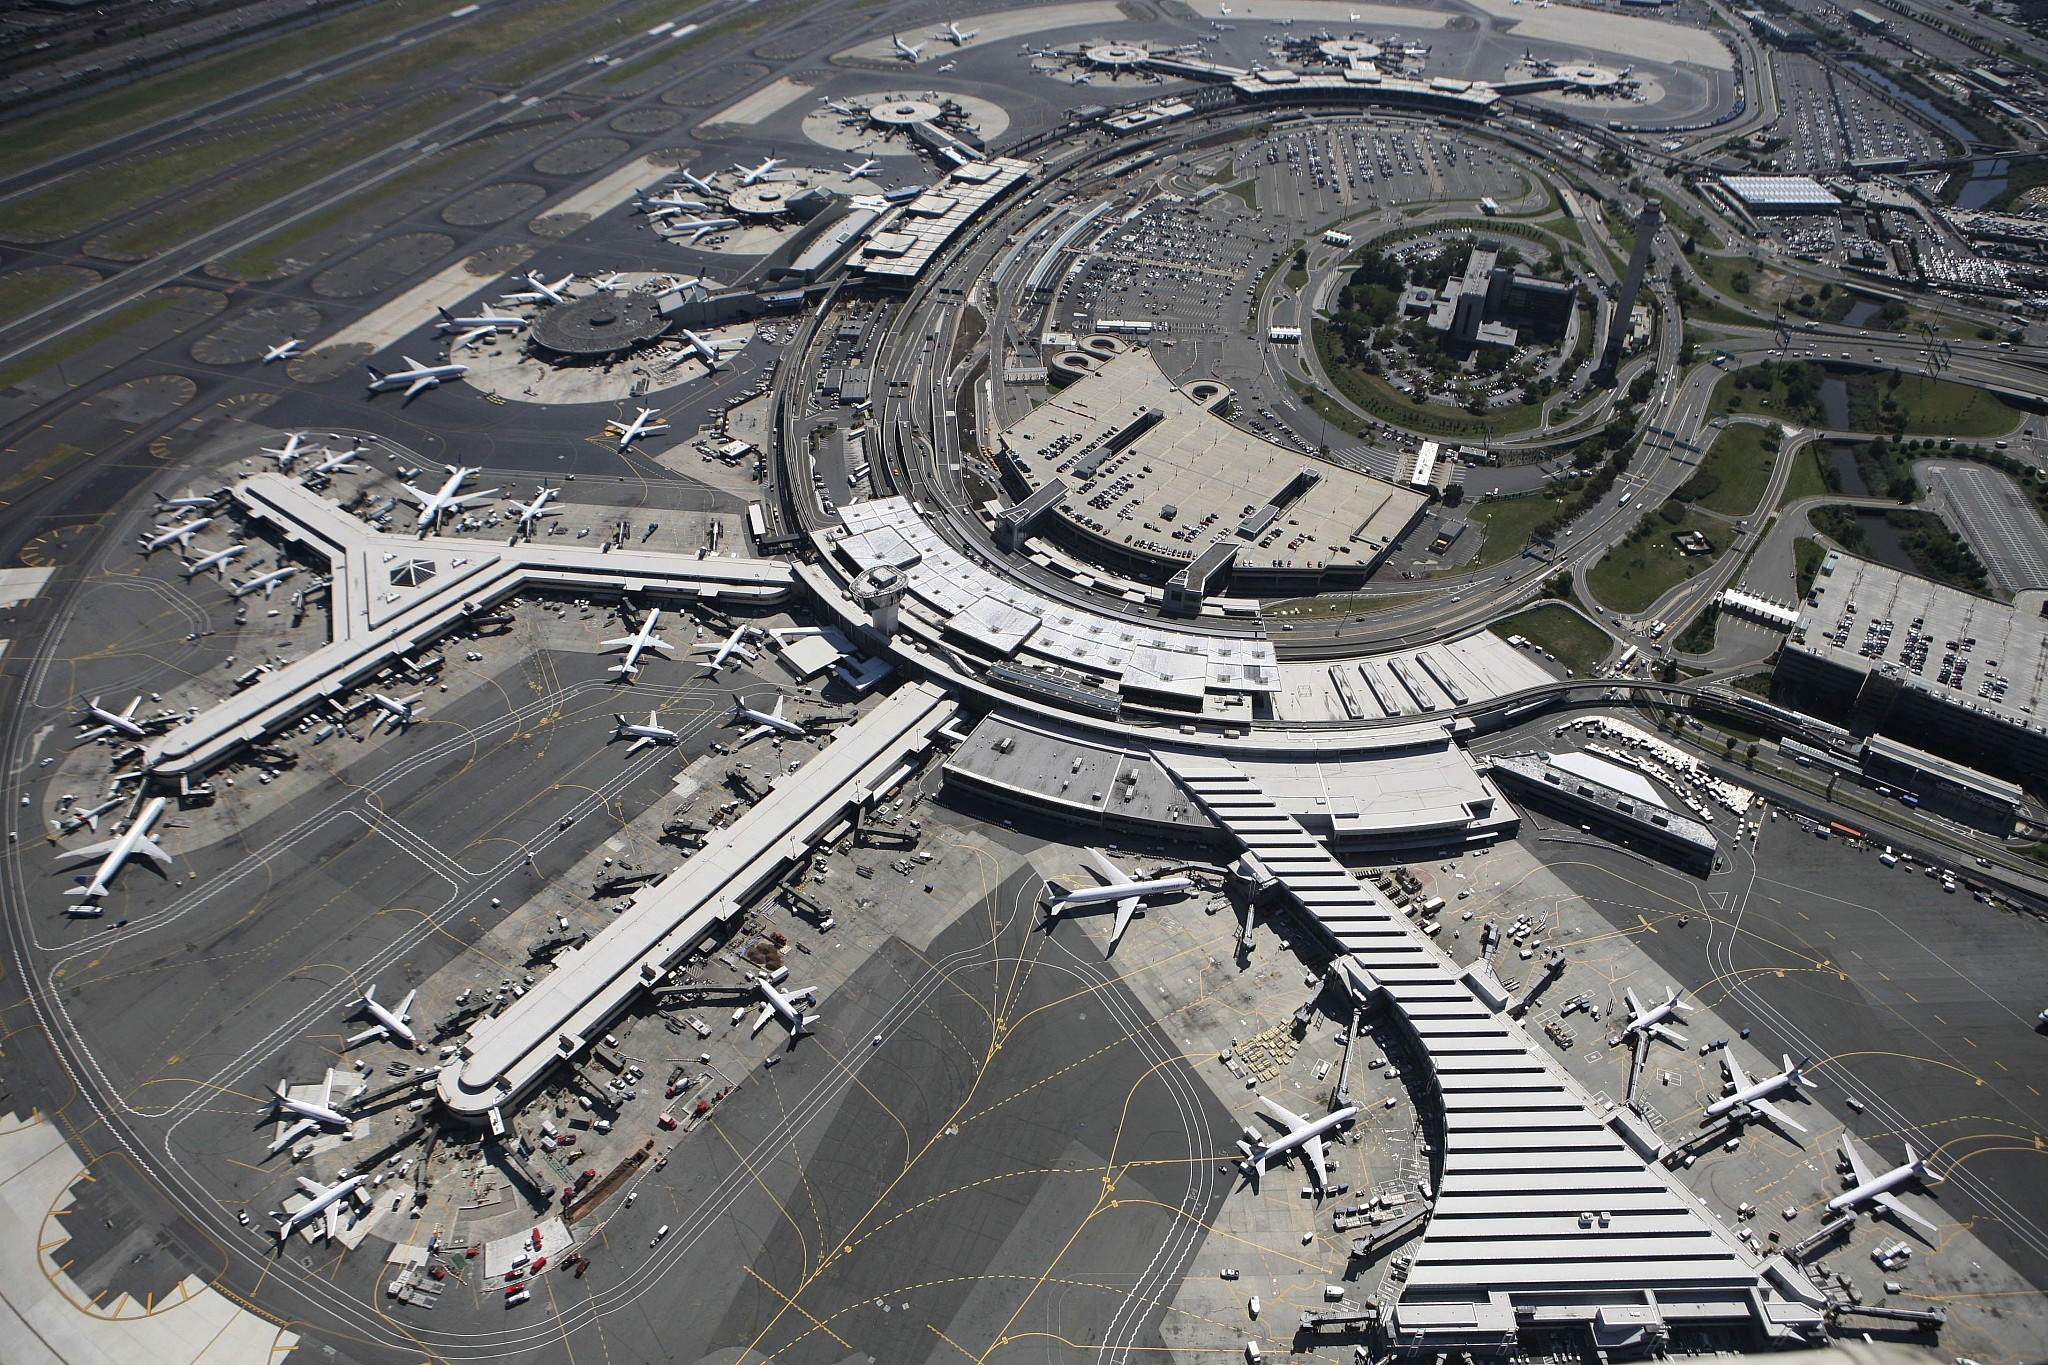 US Newark airport disrupted after drone sightings